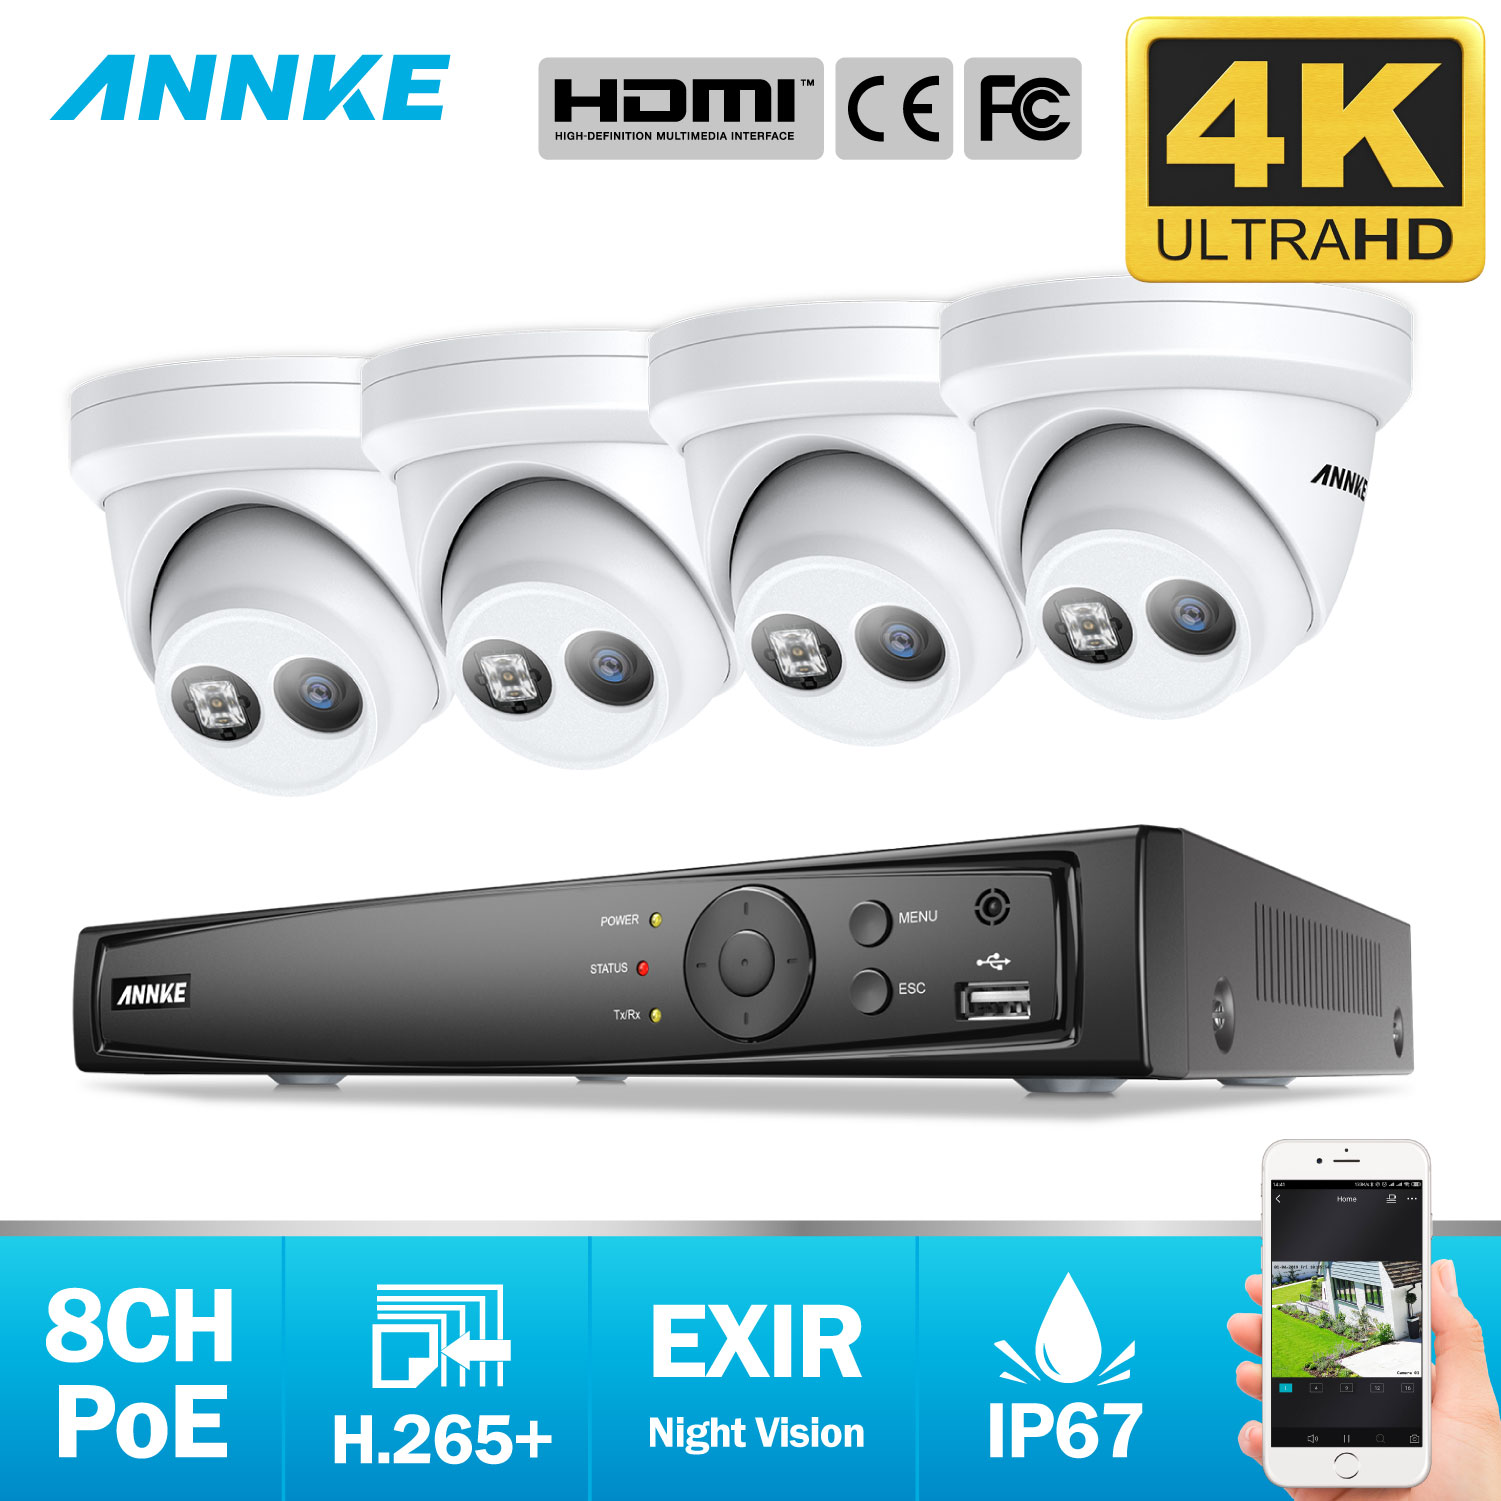 ANNKE 8CH 4K Ultra HD POE Network Video Security System 8MP H.265+ NVR With 4PCS 8MP 30m EXIR Night Vision Waterproof IP Camera